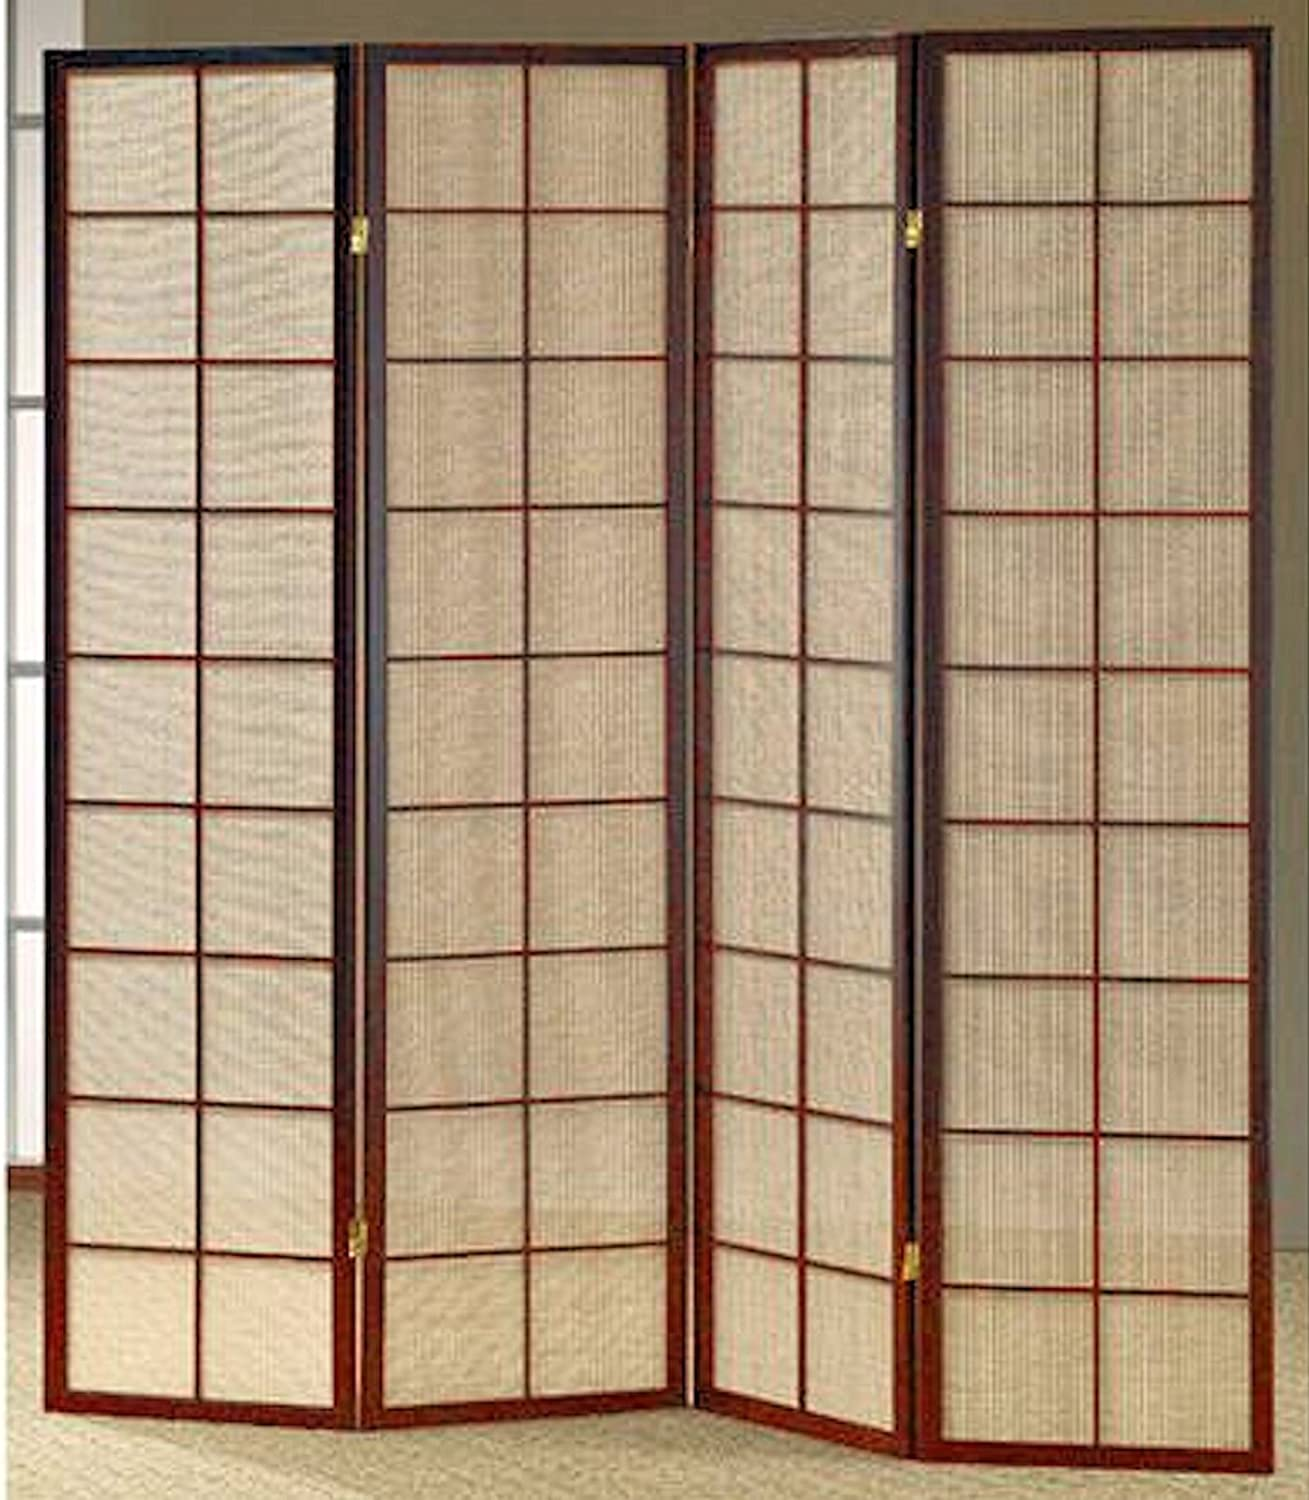 amazon com legacy decor fabric in lay folding room screen divider